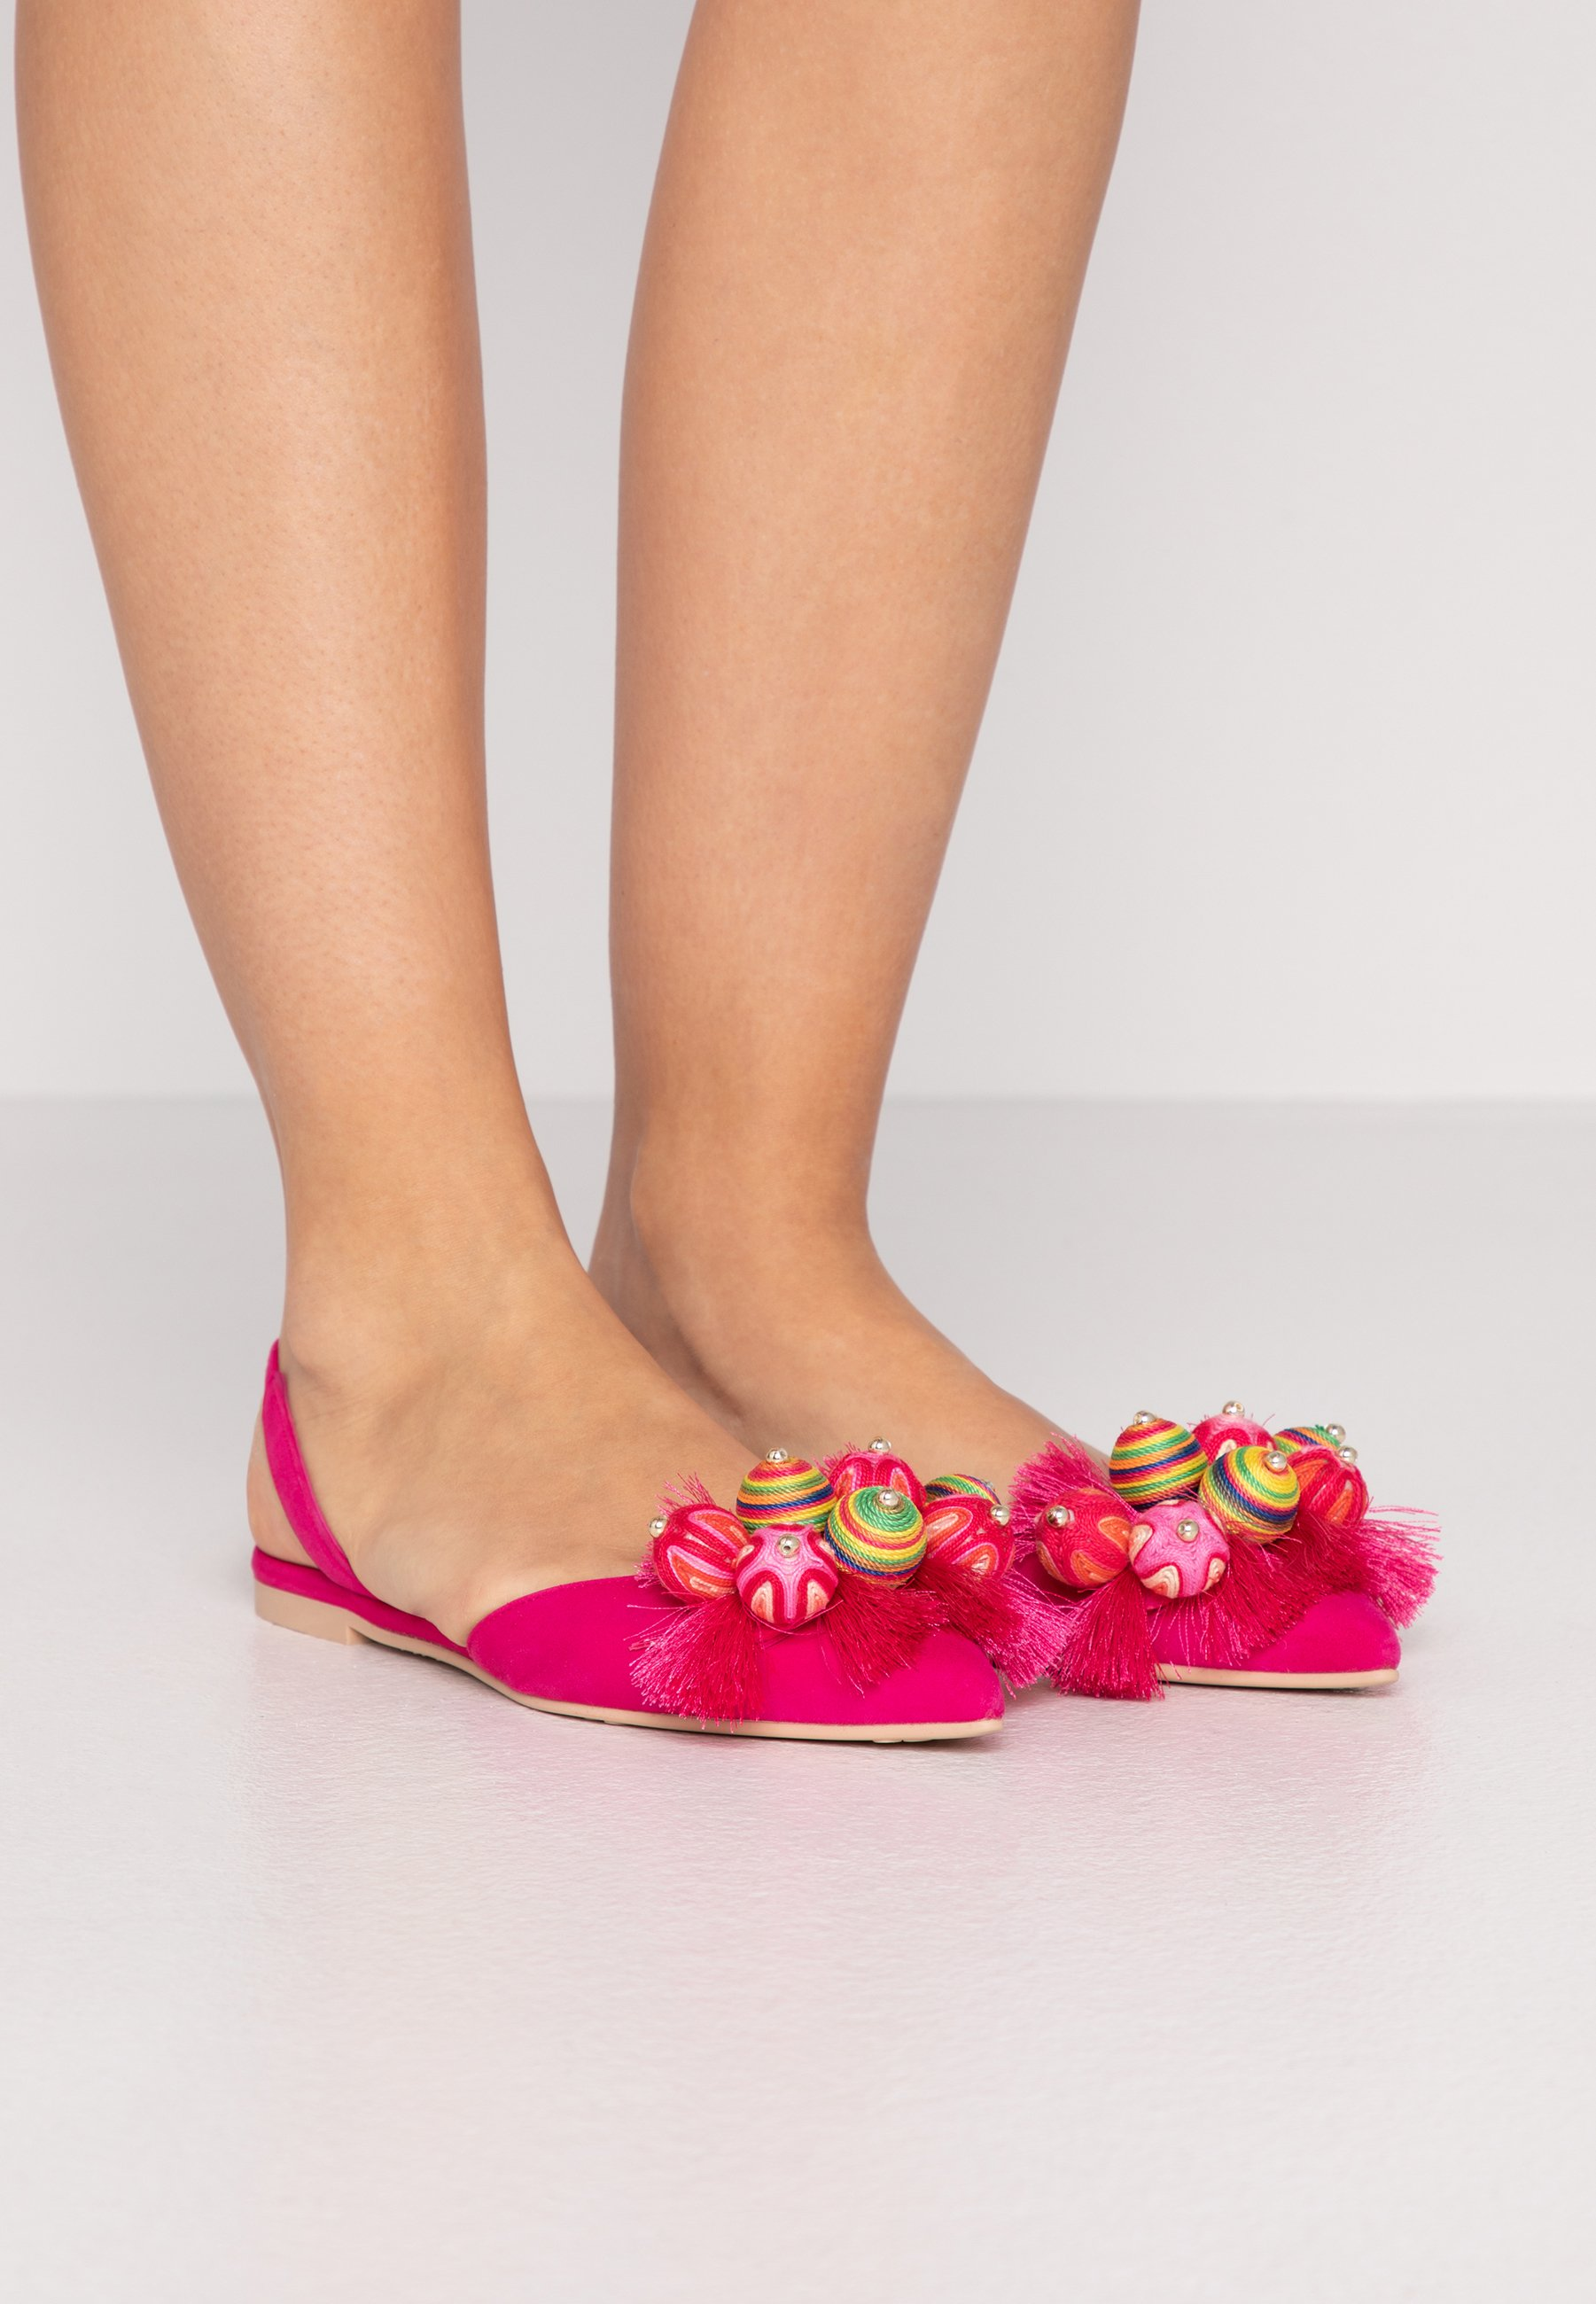 Outlet Cheapest Pretty Ballerinas Slingback ballet pumps - fuxia/coco | women's shoes 2020 qGMr8